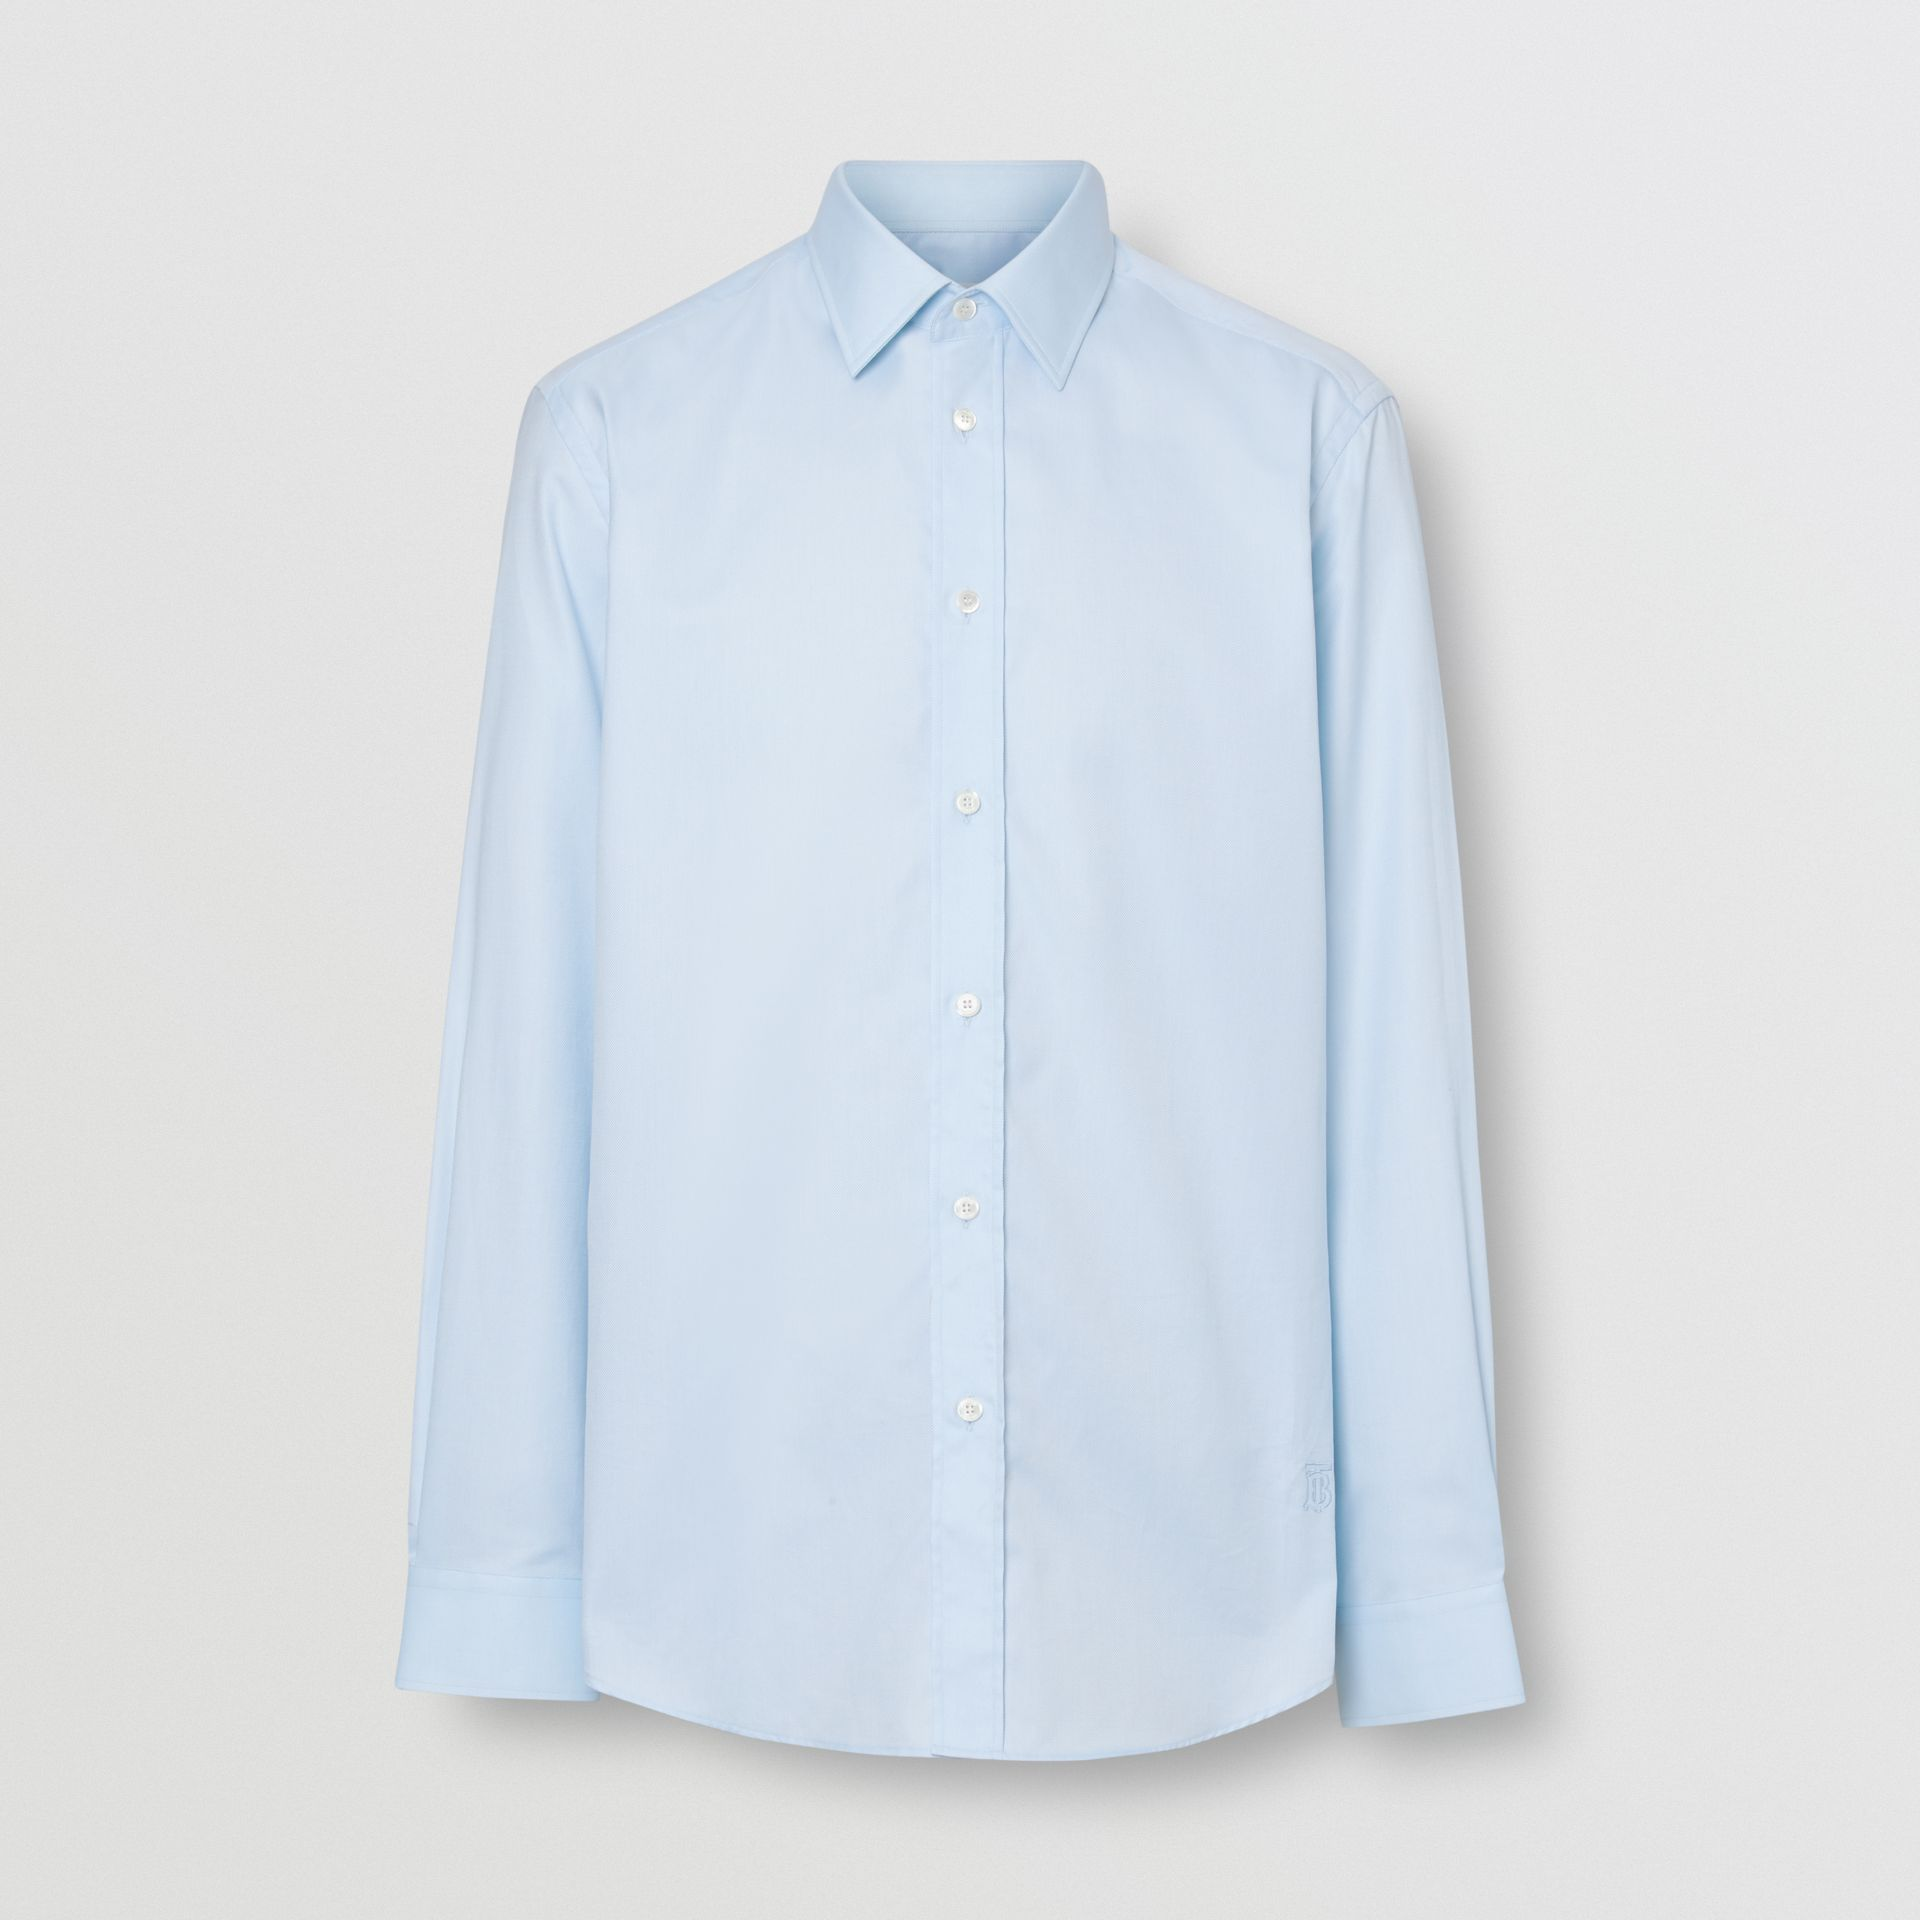 Classic Fit Monogram Motif Cotton Oxford Shirt in Pale Blue - Men | Burberry - gallery image 3